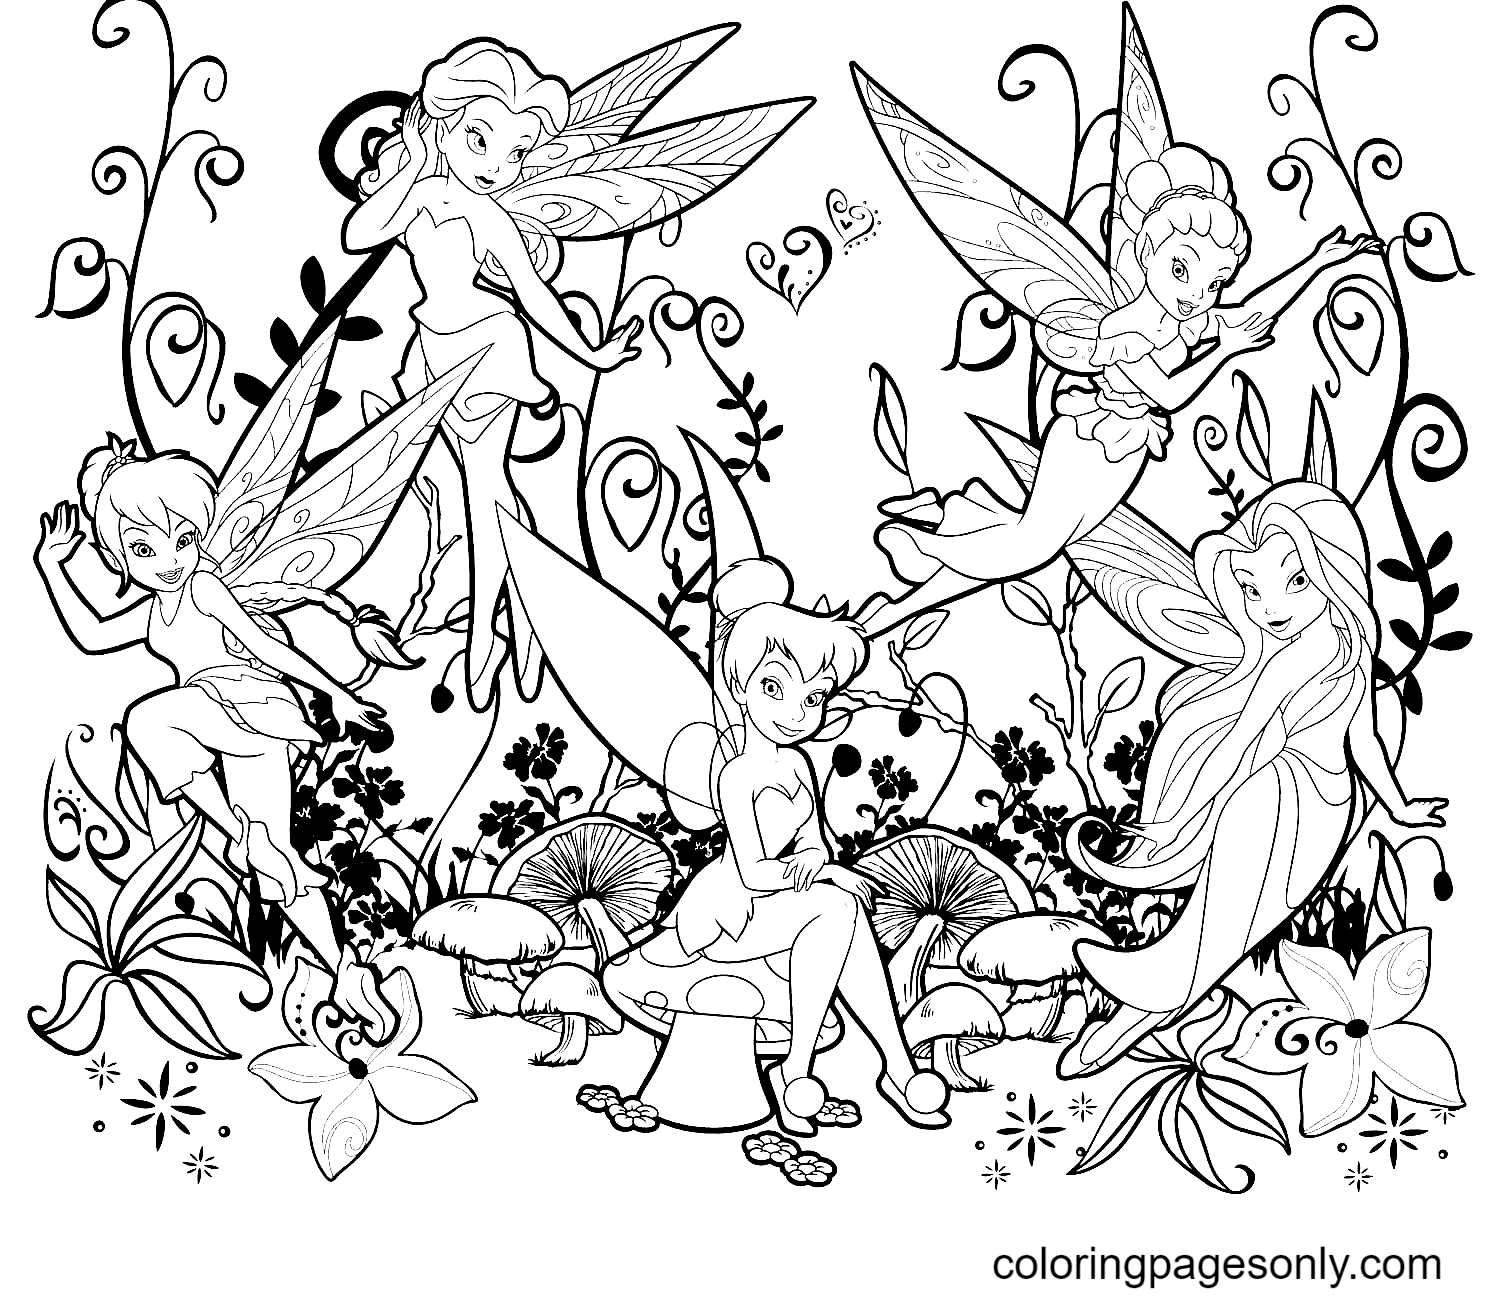 Tinkerbell with Disney Fairy Coloring Page